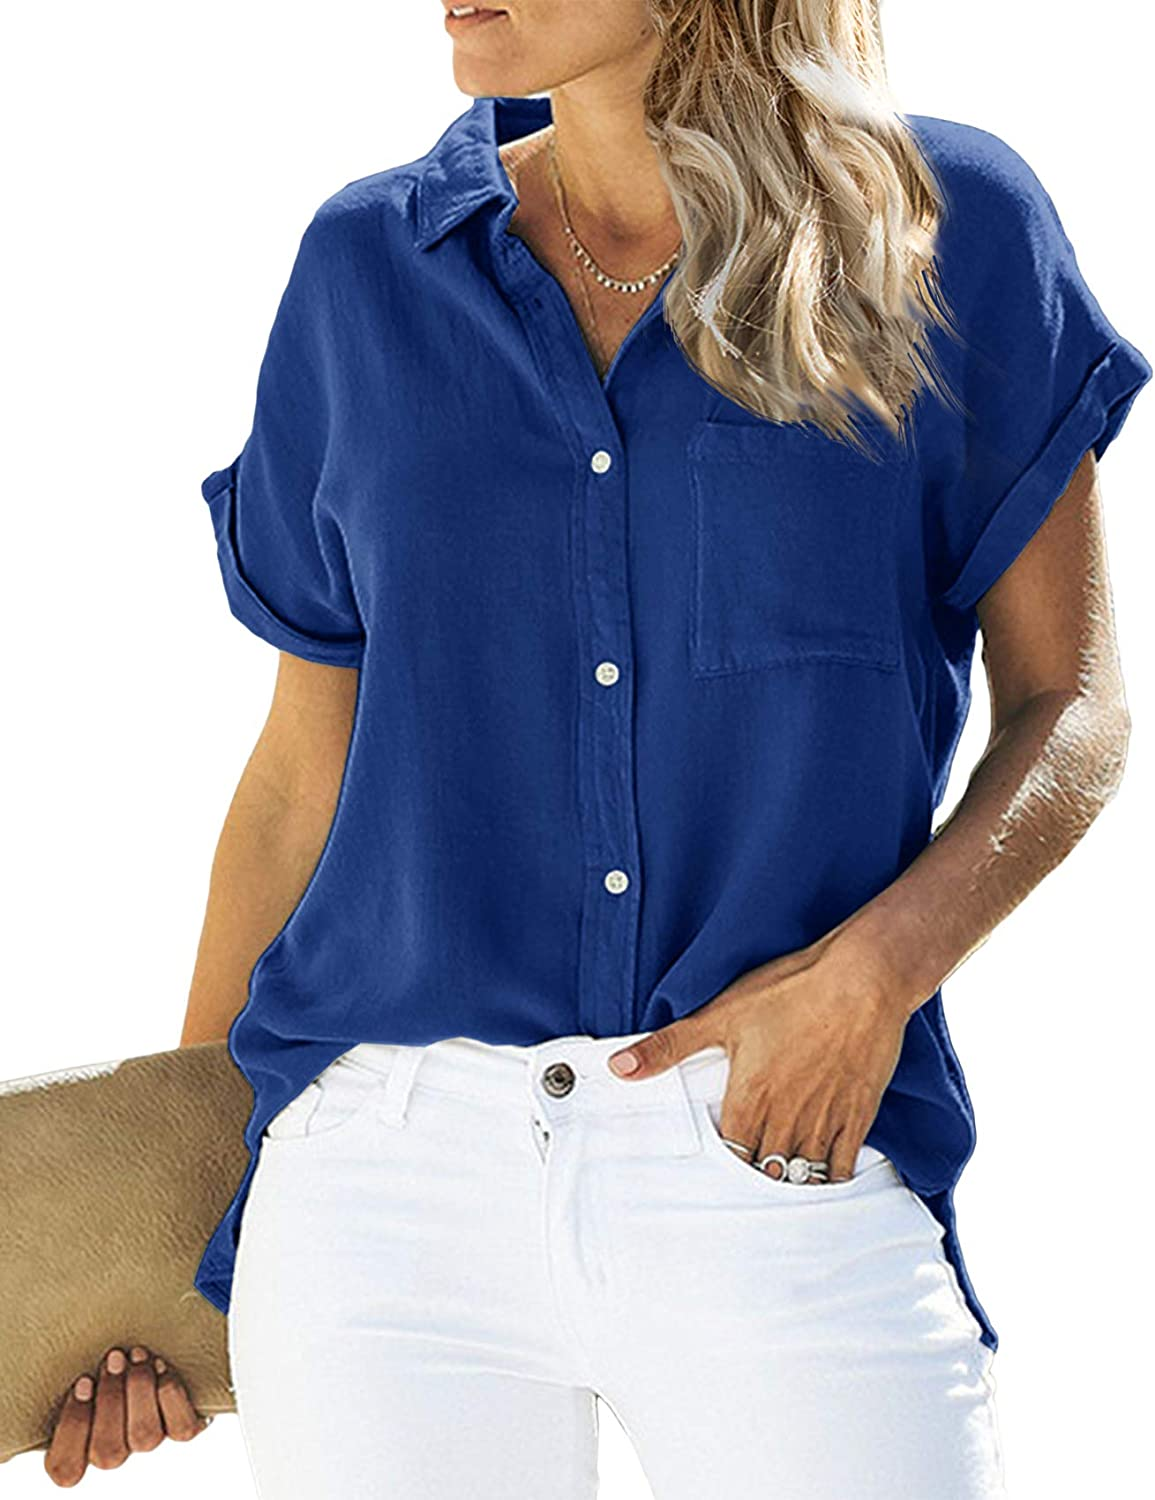 Womens V Neck Shirts Loose Blouse Short Sleeve Button Down Casual Work Tops with Pockets